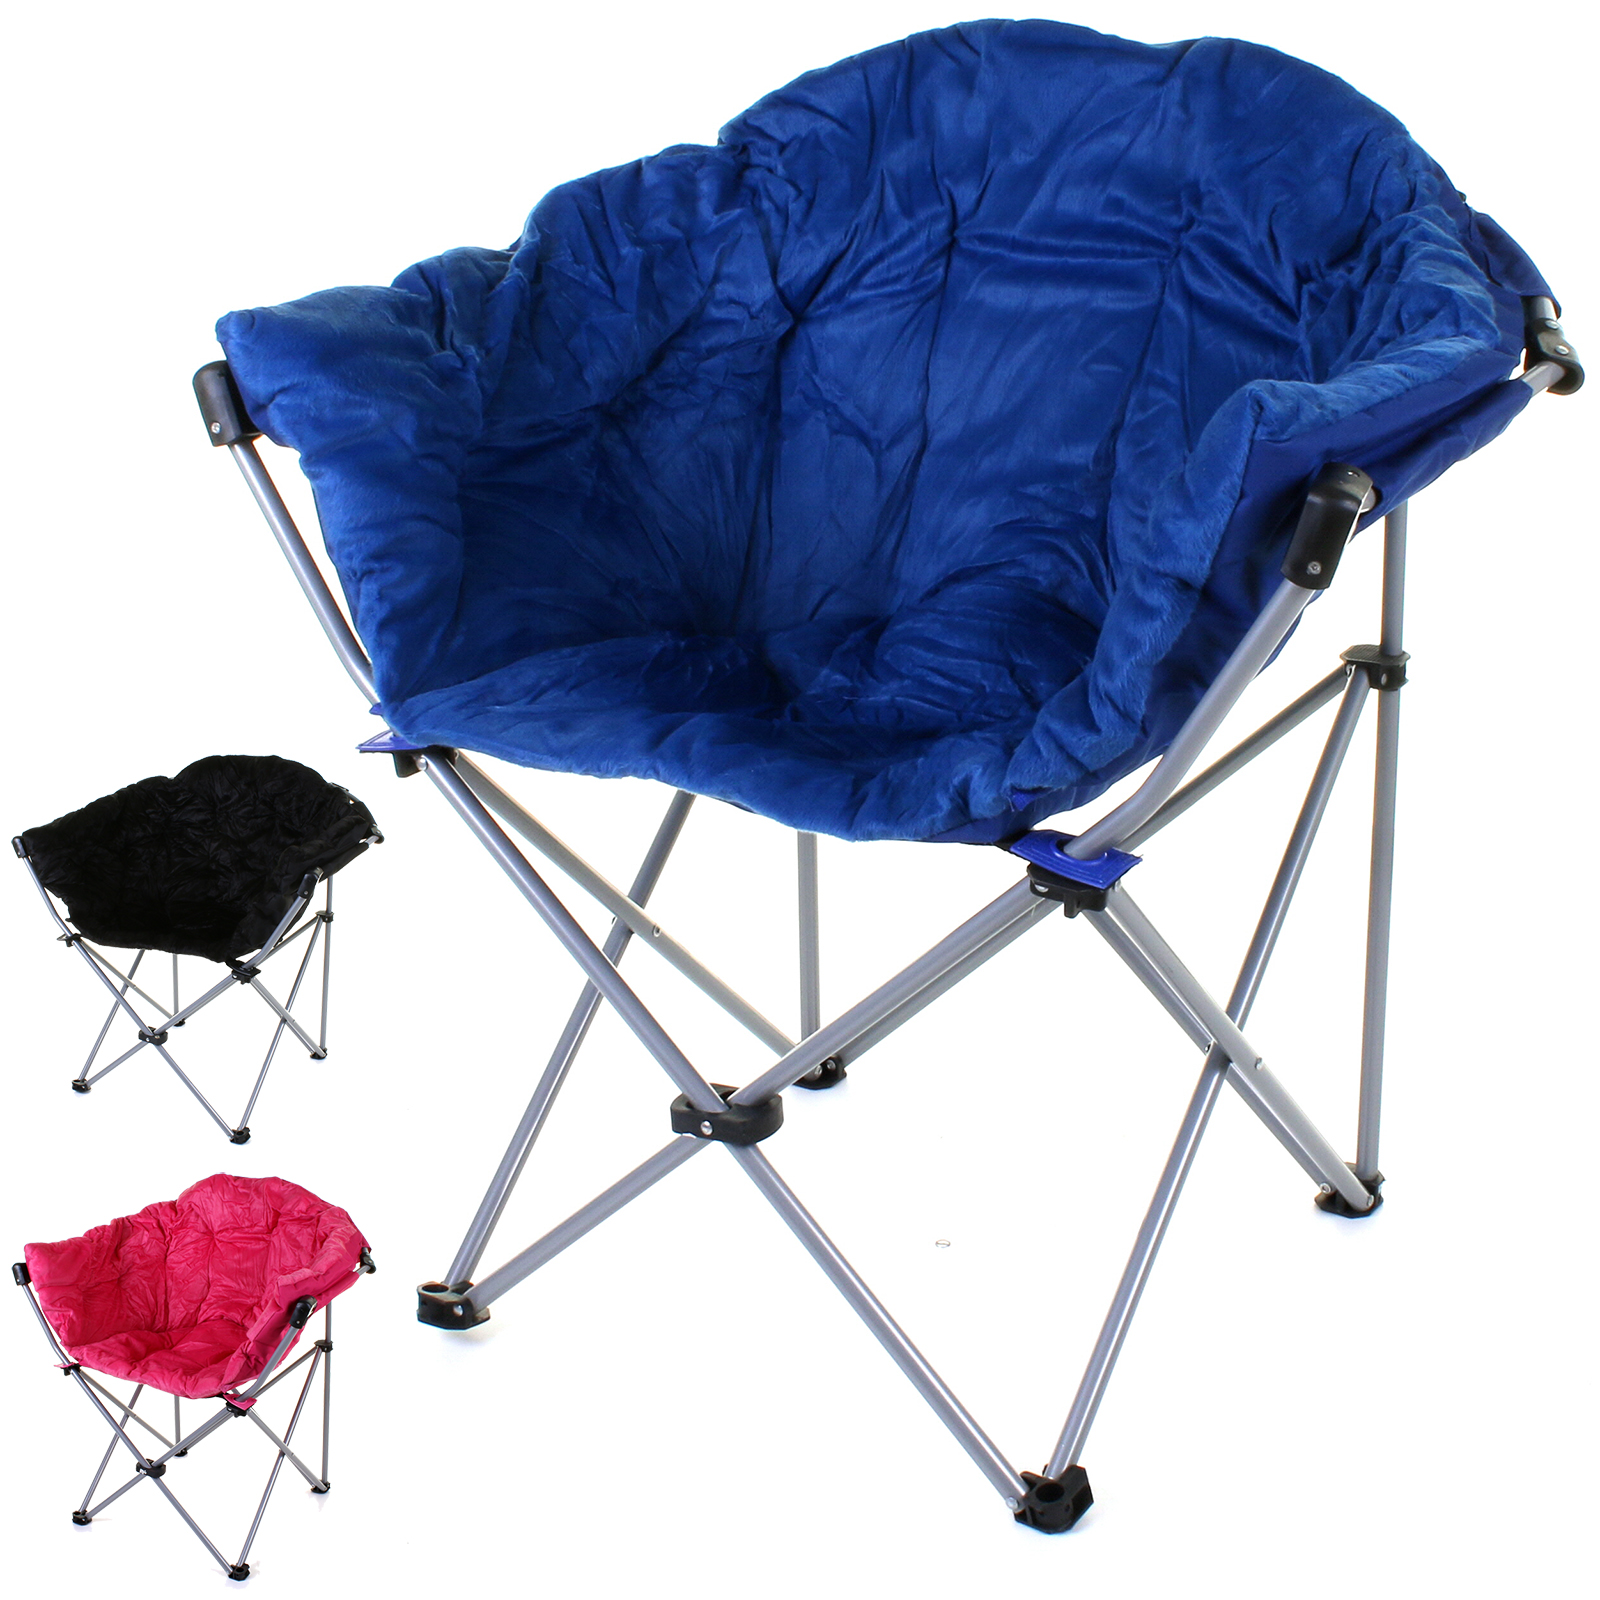 Deluxe Moon Chair Folding Camping Hiking Indoor Outdoor Garden